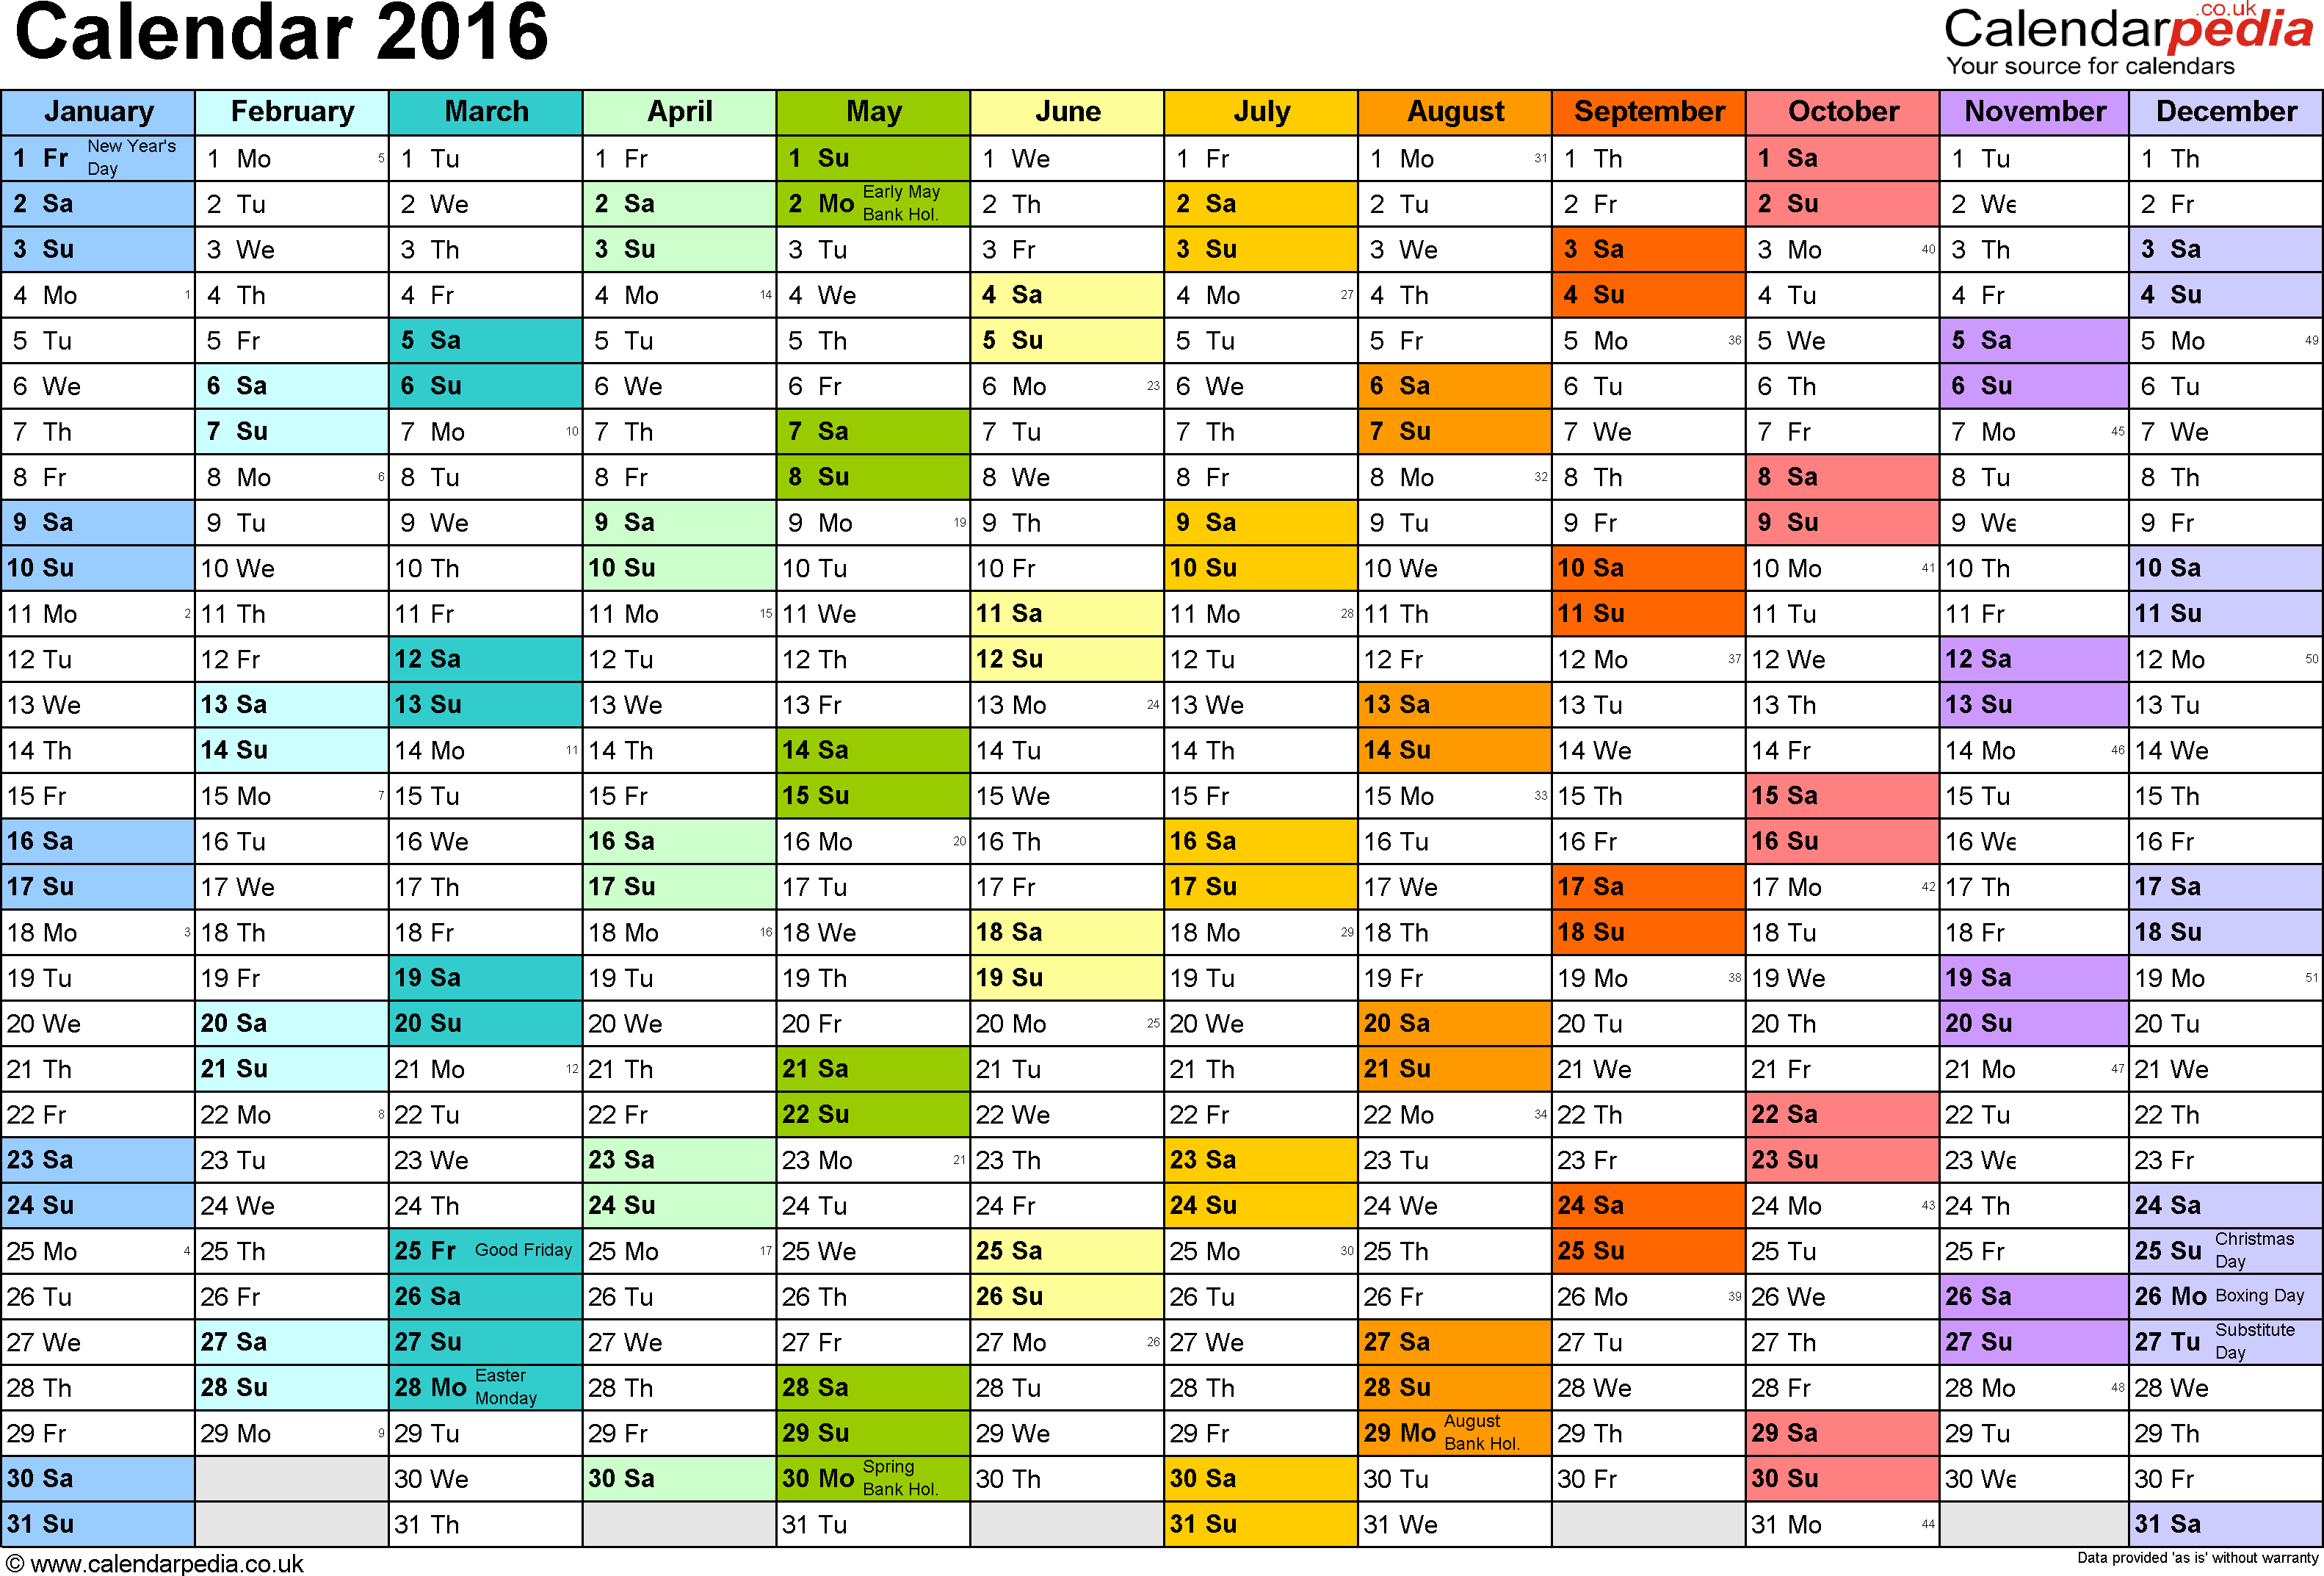 Template 1: Yearly calendar 2016 as PDF template, landscape orientation, A4, 1 page, months horizontally, days vertically, in colour, with UK bank holidays and week numbers